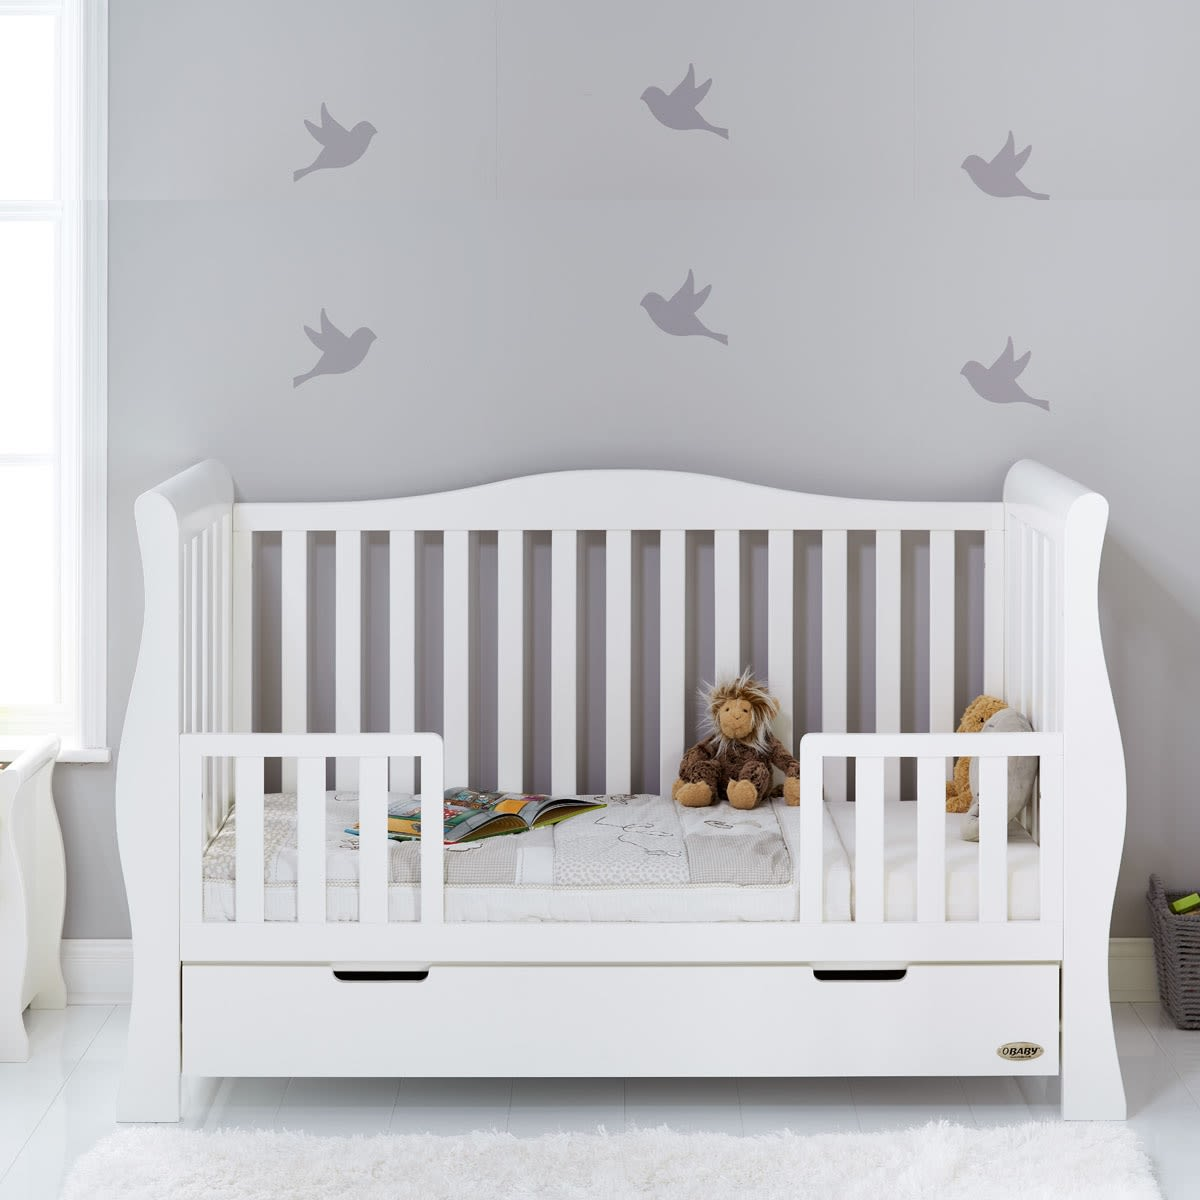 Furniture Store Stamford Ct: Stamford Luxe Sleigh Cot Bed Was £549.99 Now £449.99